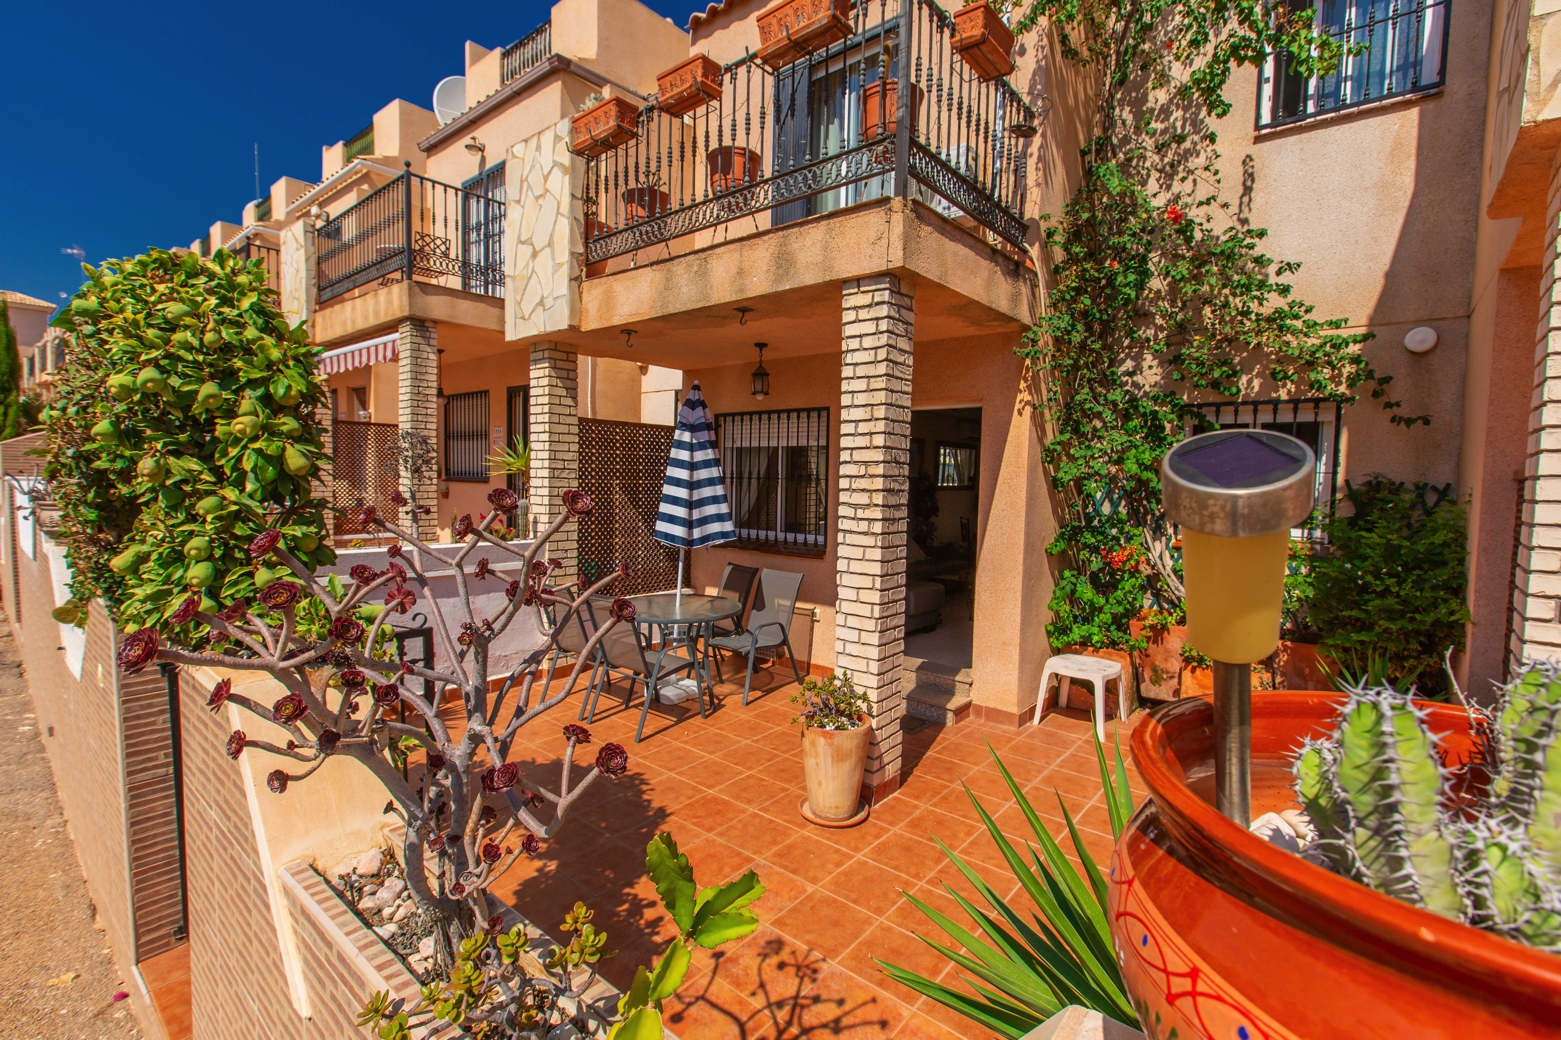 Duplex Townhouse With 3 Bedrooms For Sale Near the Punta Prima Beach